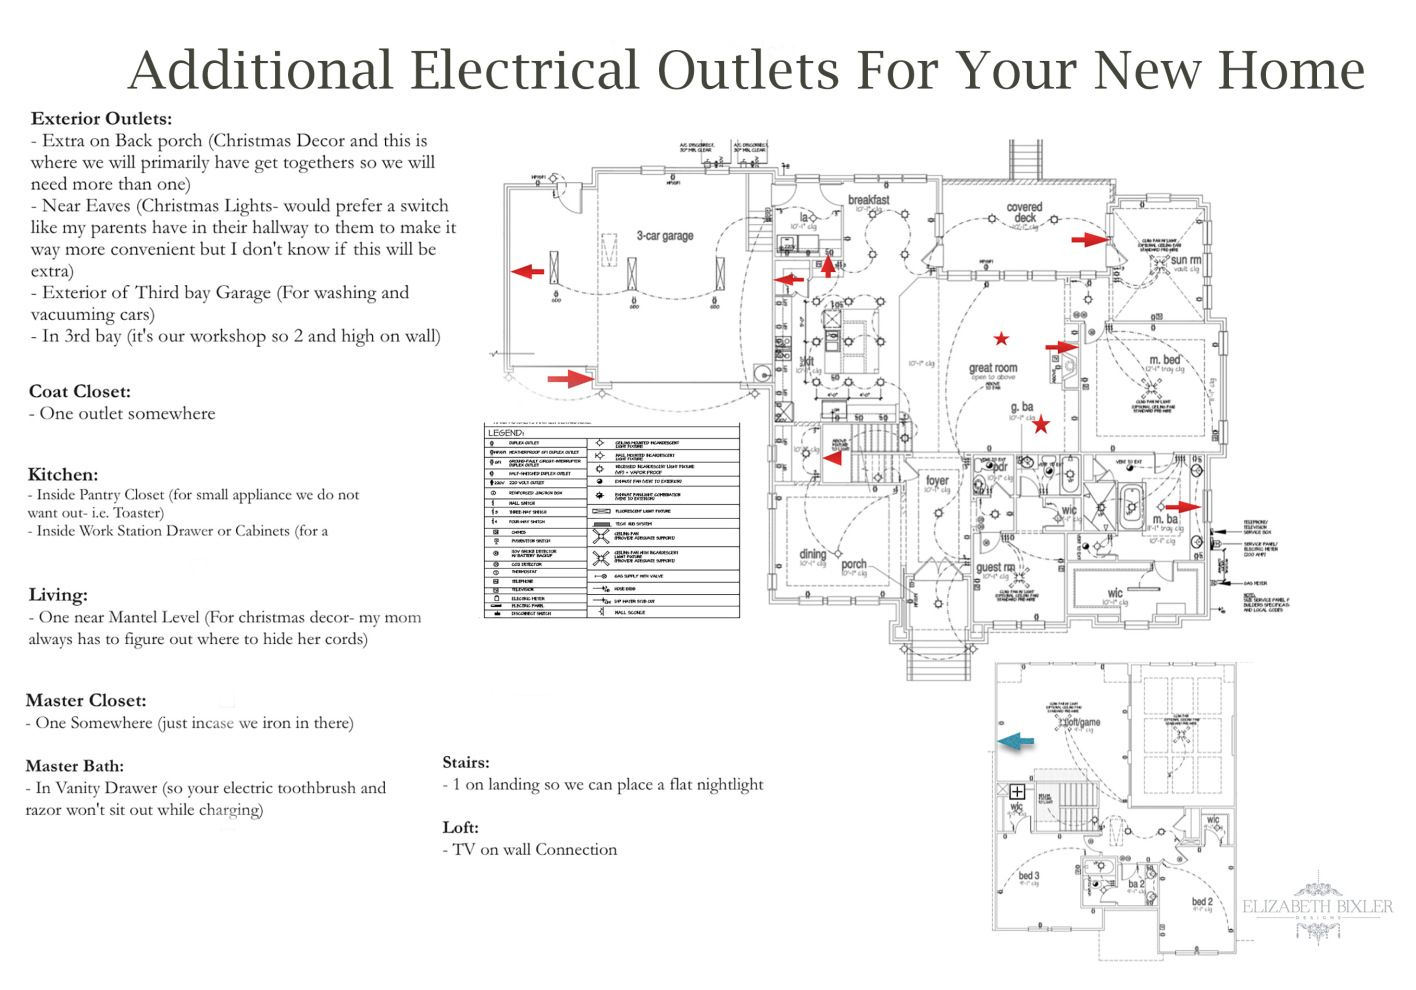 electrical plan new home important electrical outlets to your home  with images  home  important electrical outlets to your